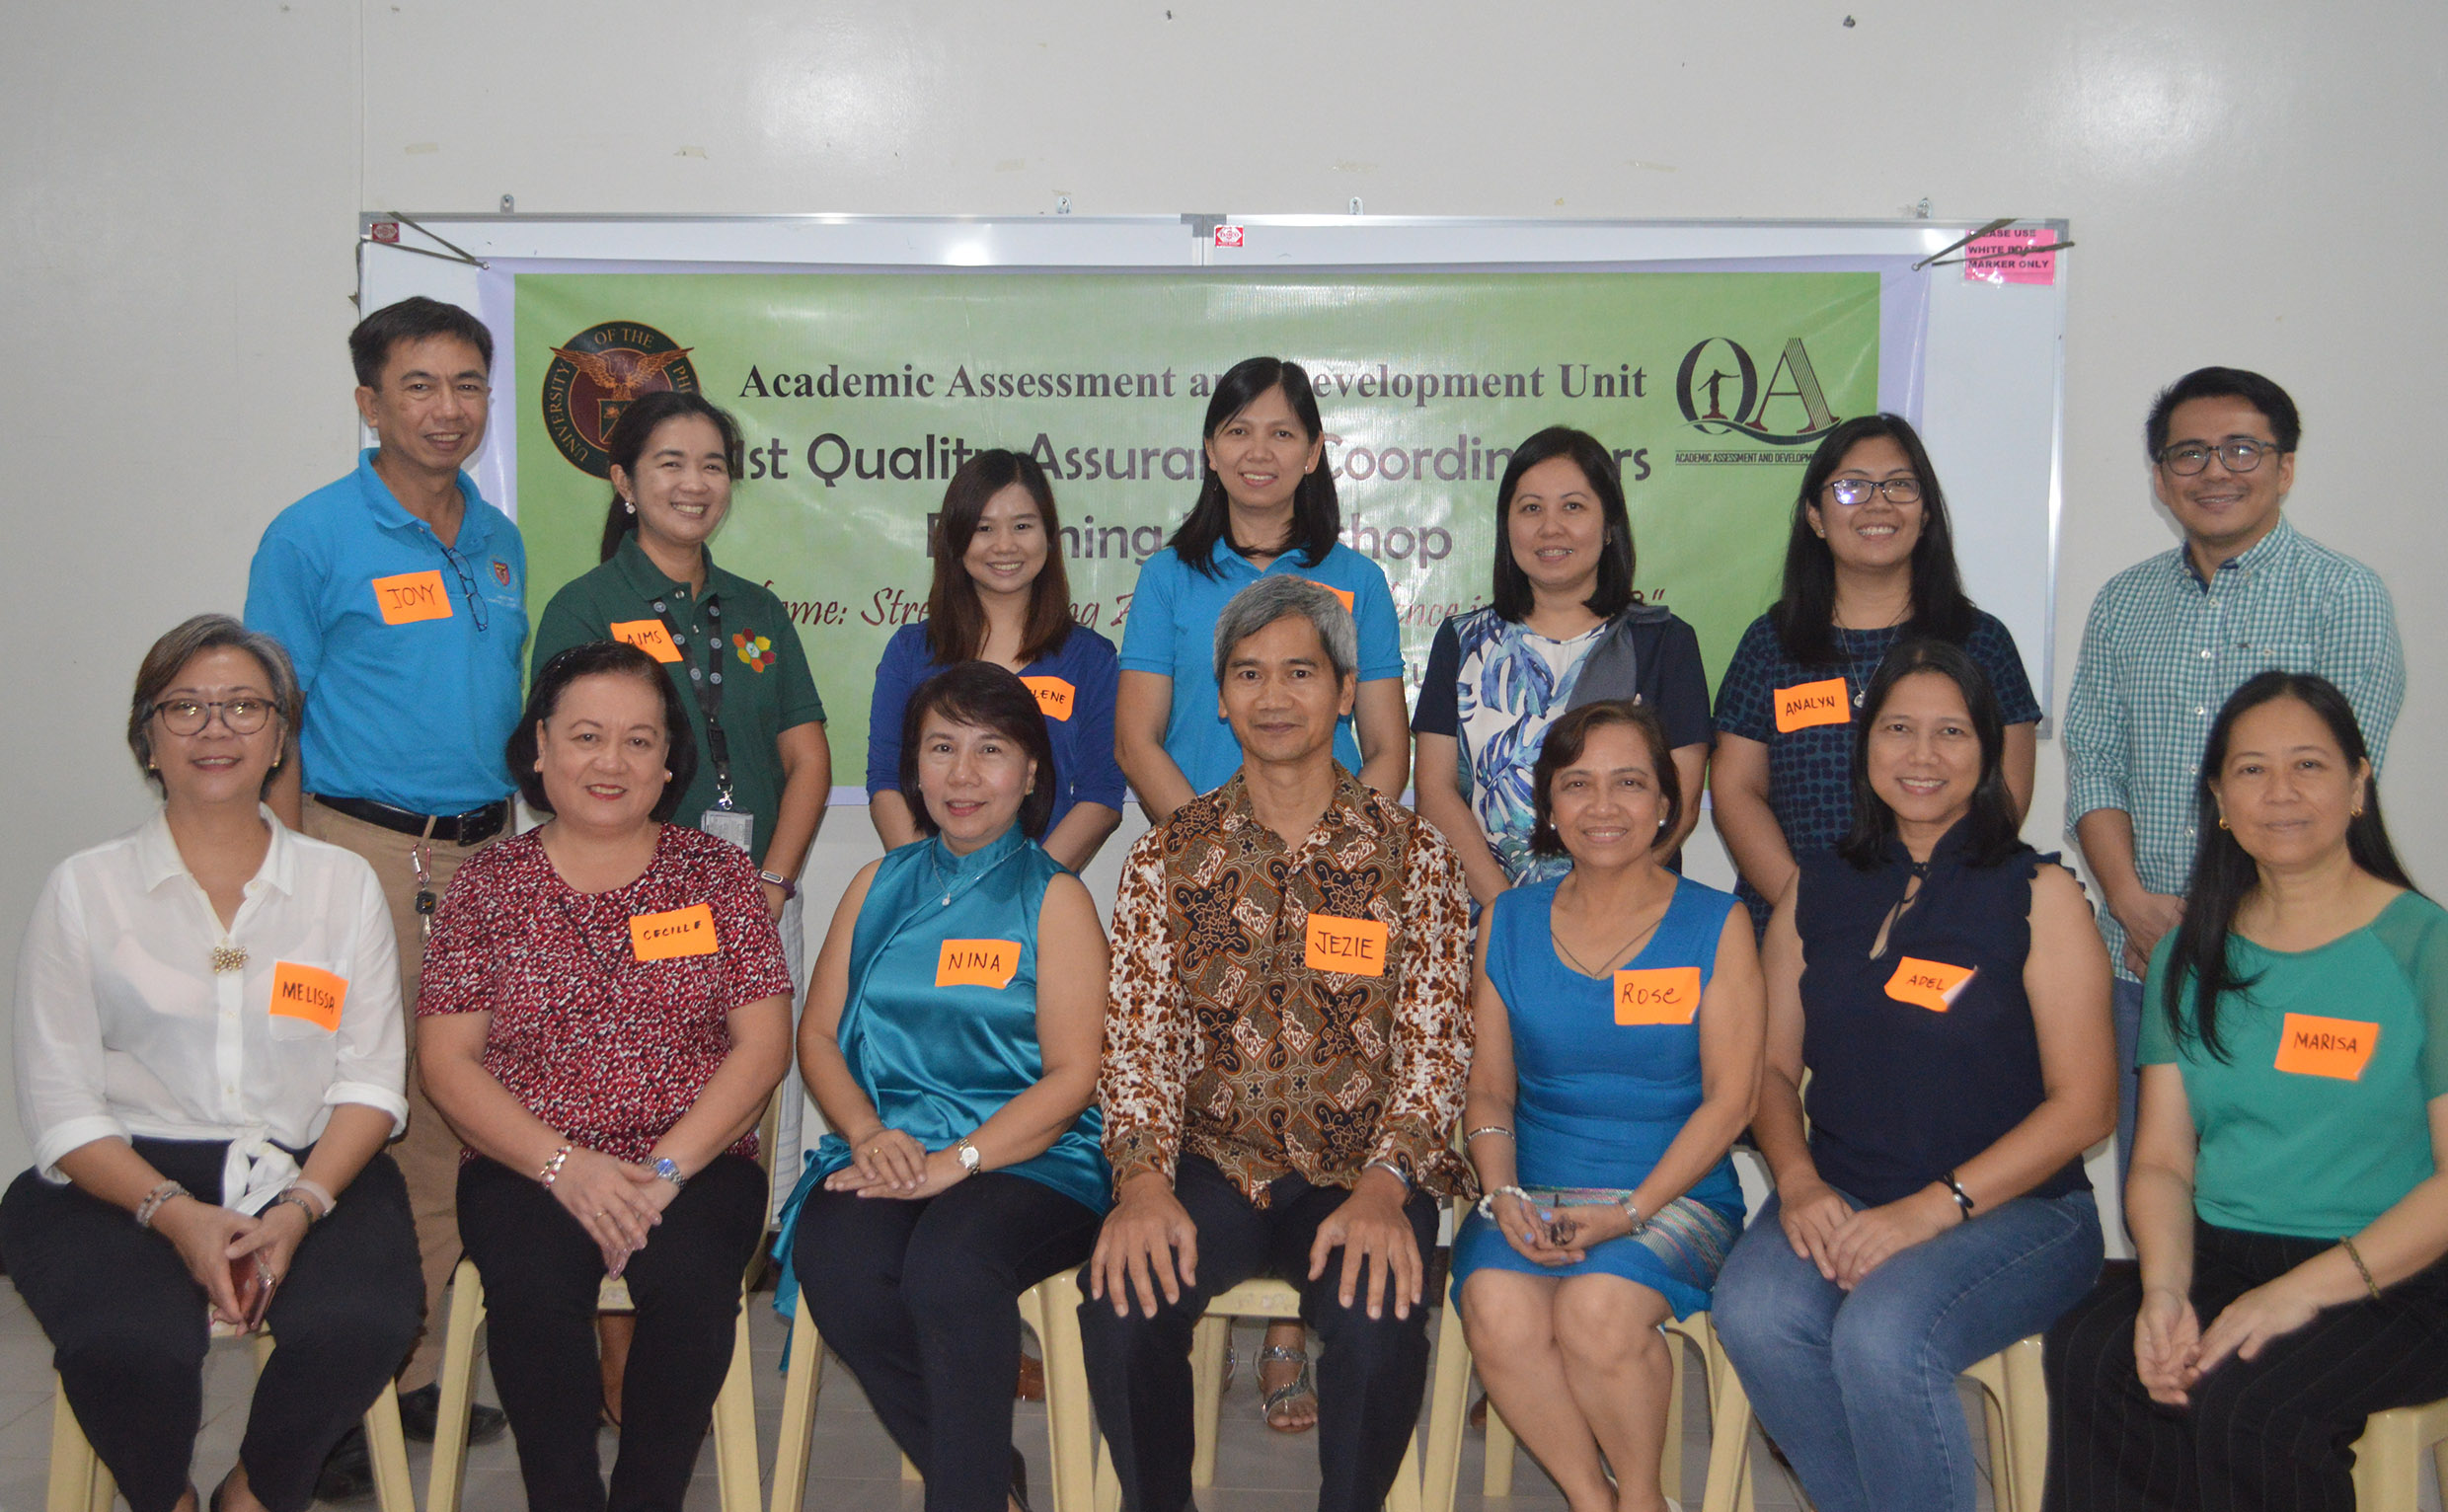 AADU makes roadmap for QA in UPLB